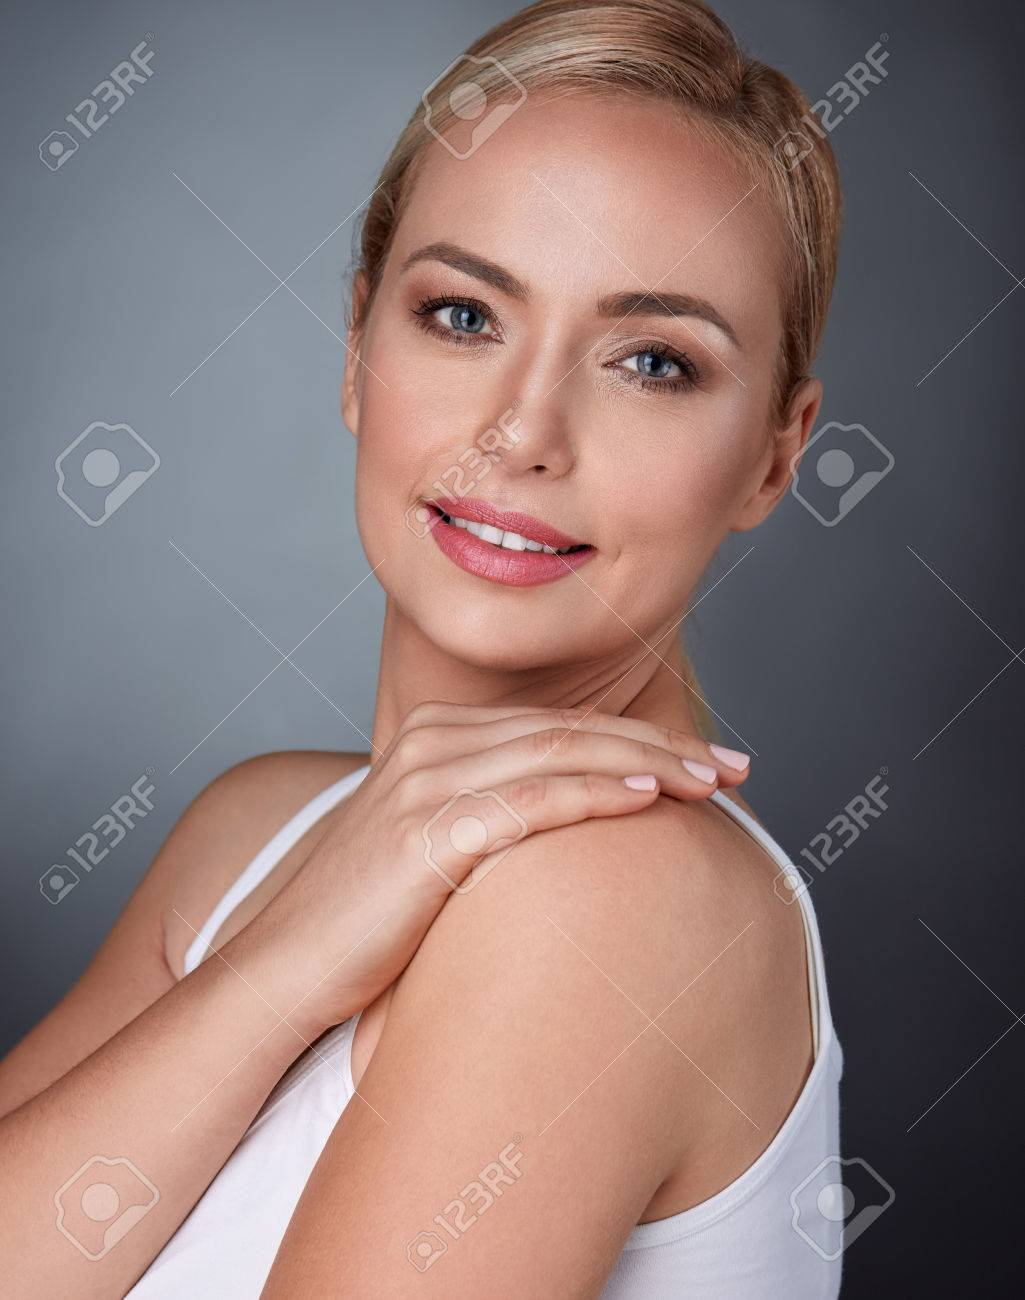 A your shoulder when woman touches 46 Male